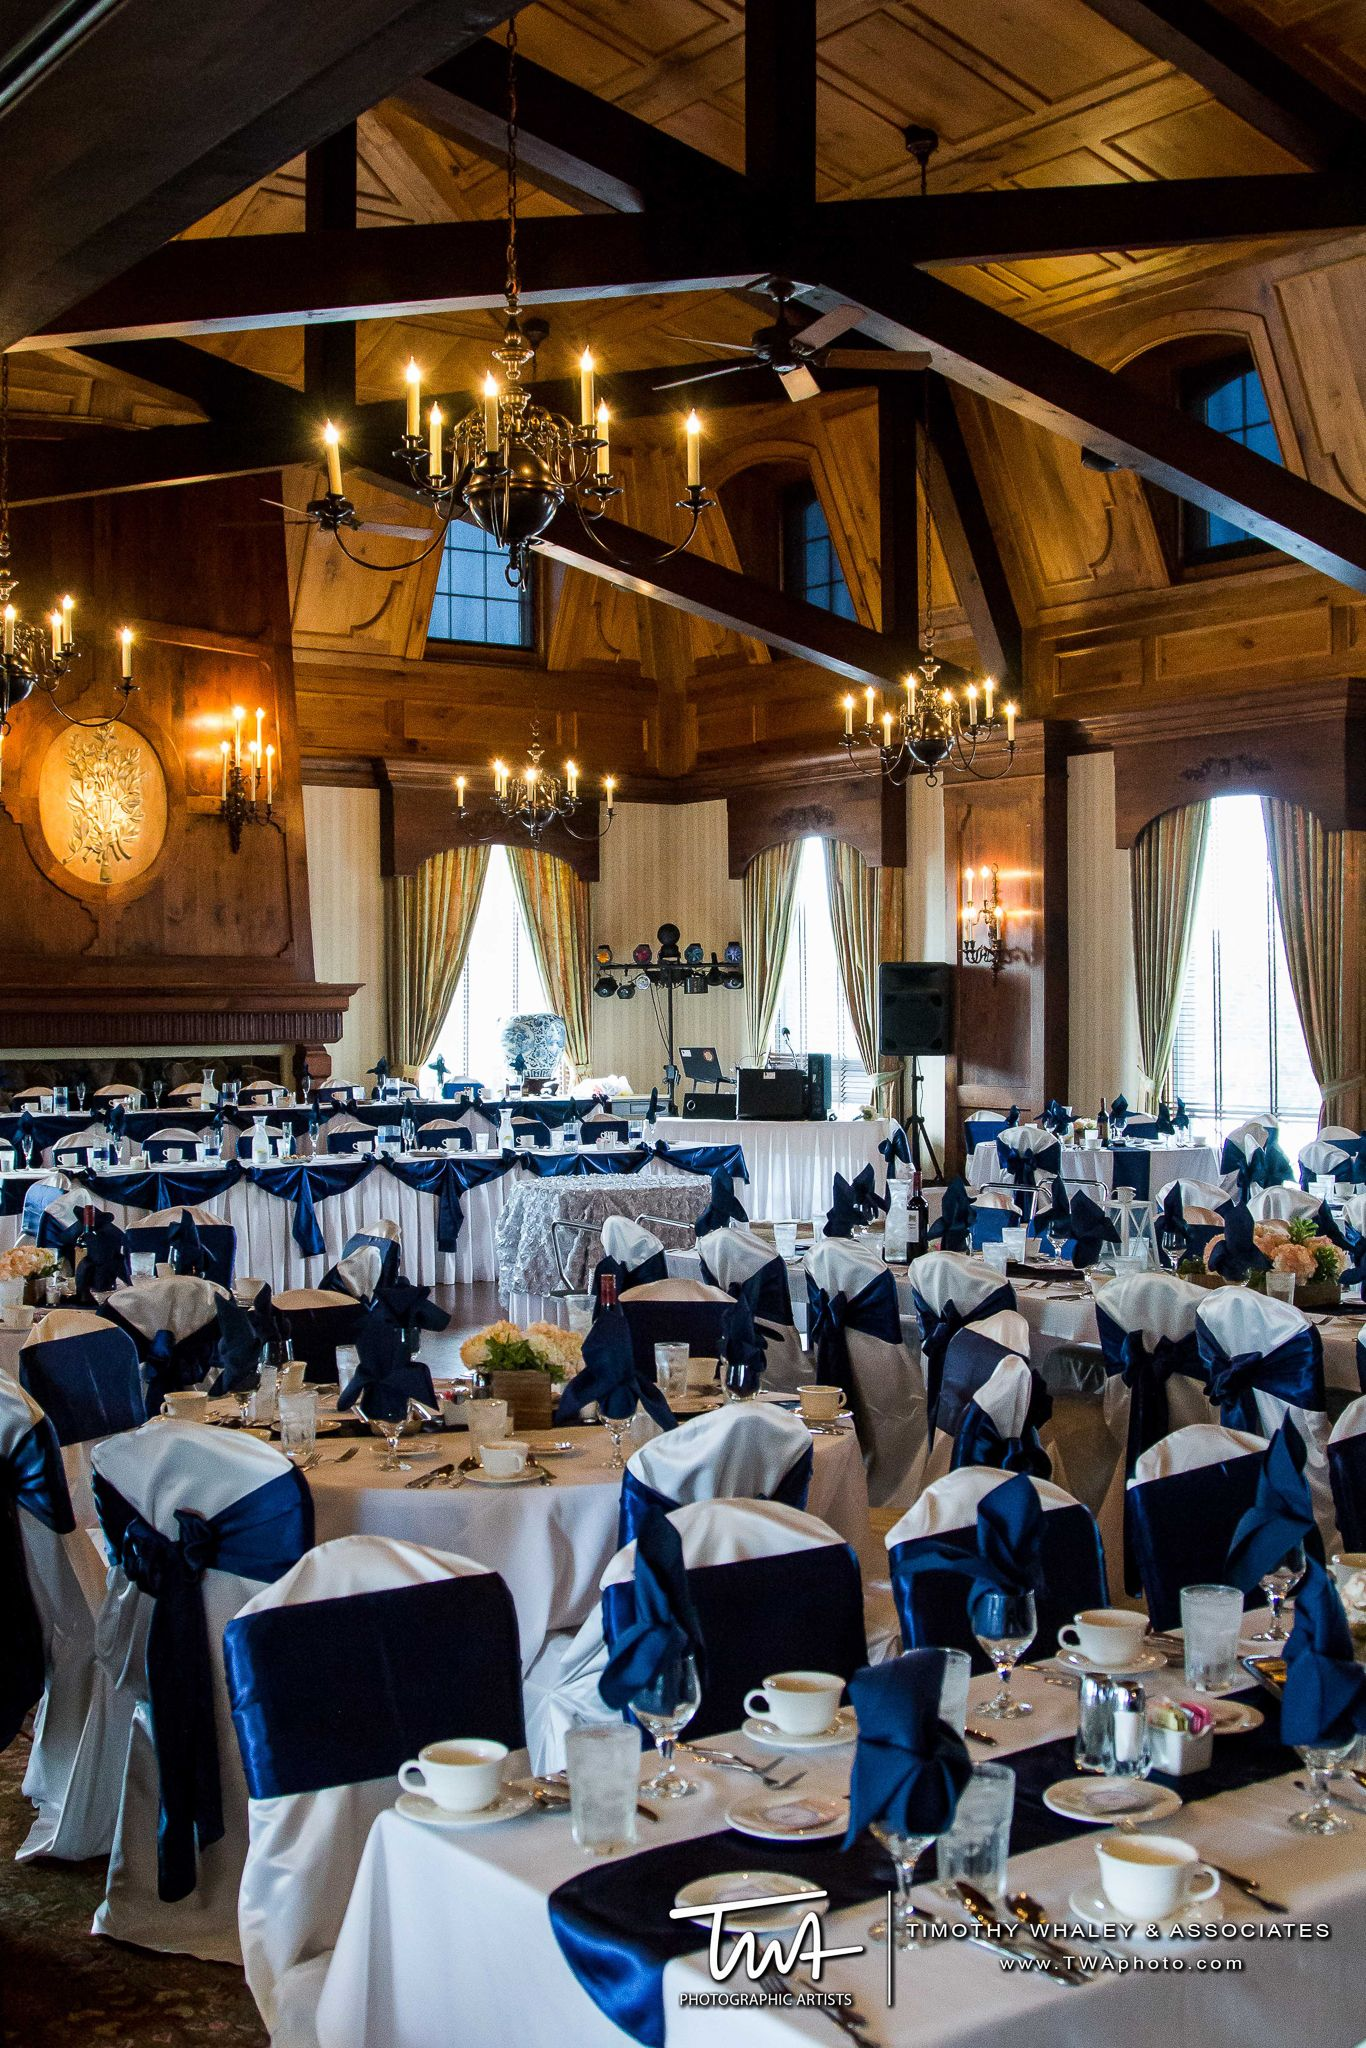 Twa Weddings At Cog Hill Golf And Country Club Click The Picture To Enter Our